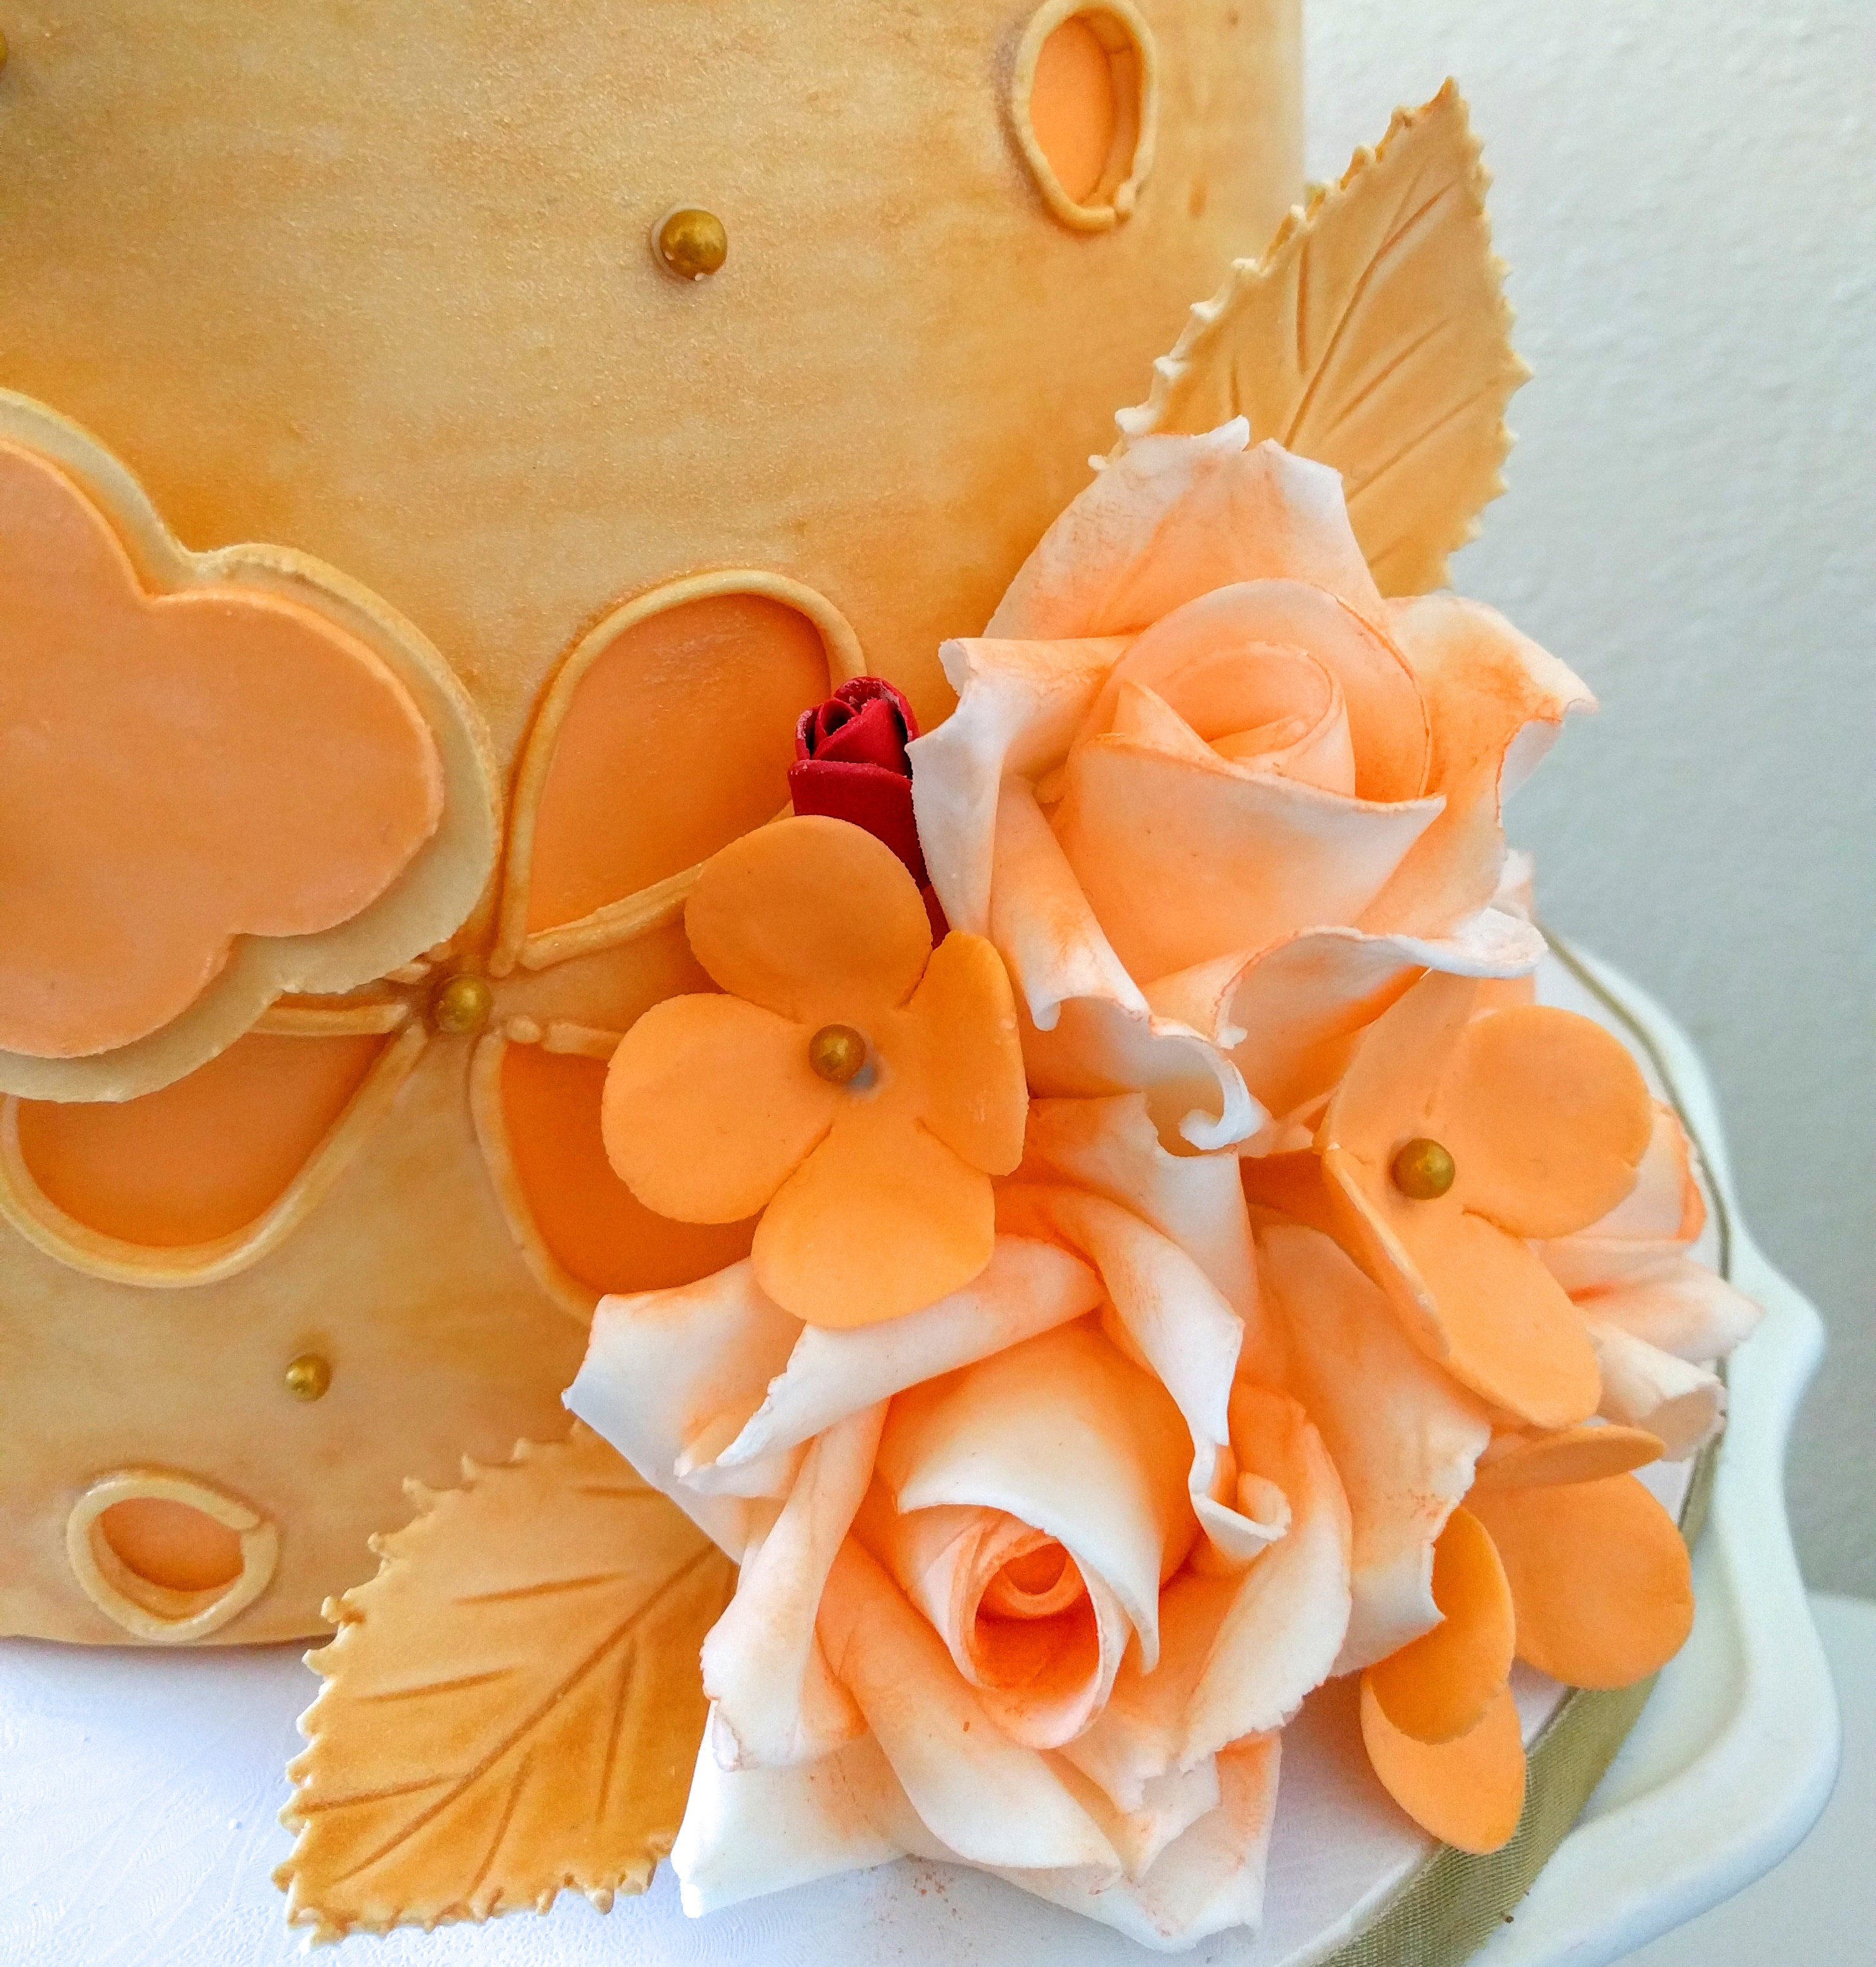 Fondant Blossom Flowers Without Molds Or Cutters Grated Nutmeg